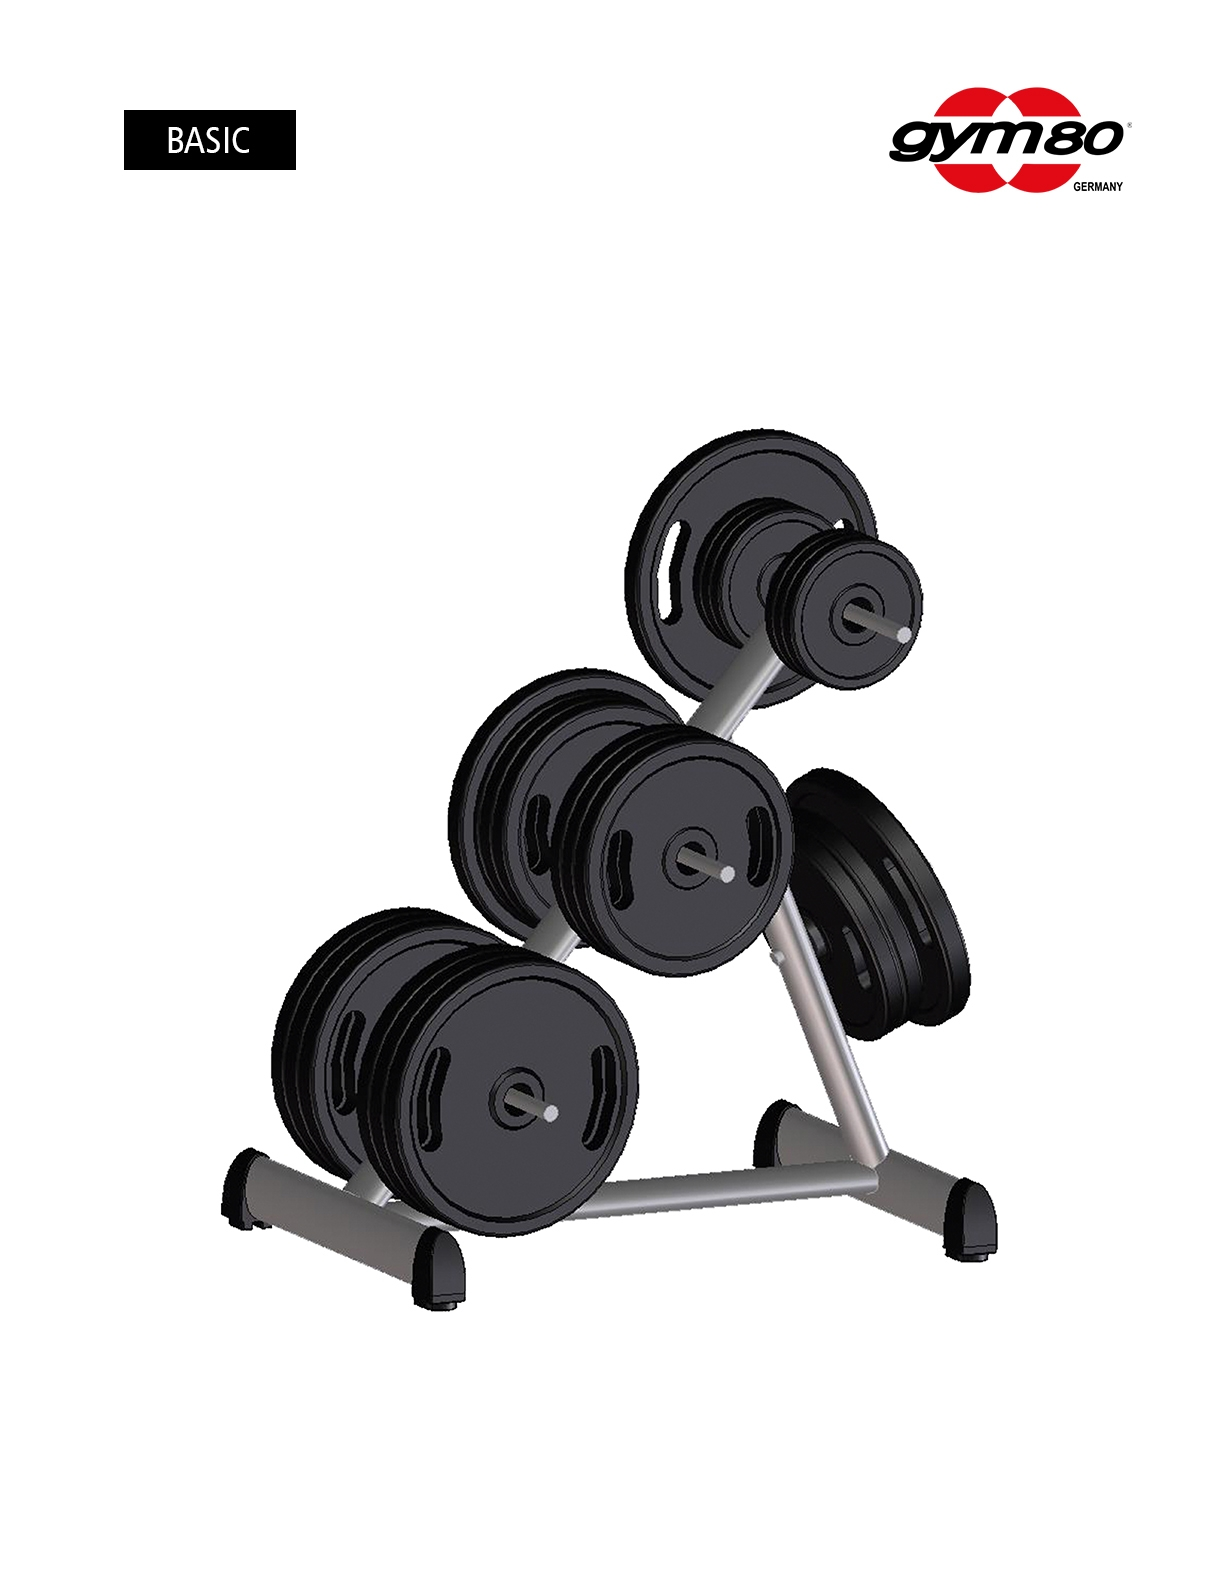 DISC STAND 45 DEGREE SYGNUM